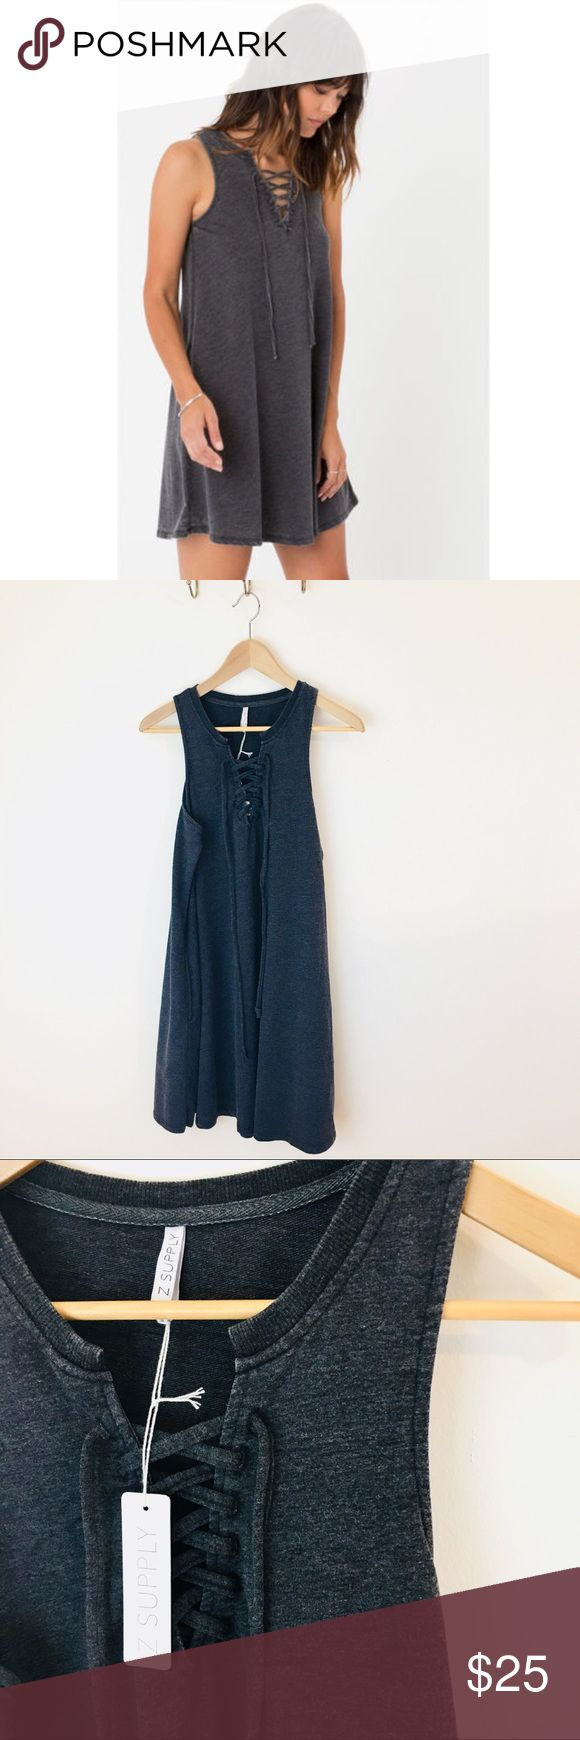 Z Supply All Tied Up Dress Dark grey jersey dress with lace up front, and pockets. NWT! A blogger fave. Z Supply Dresses Mini